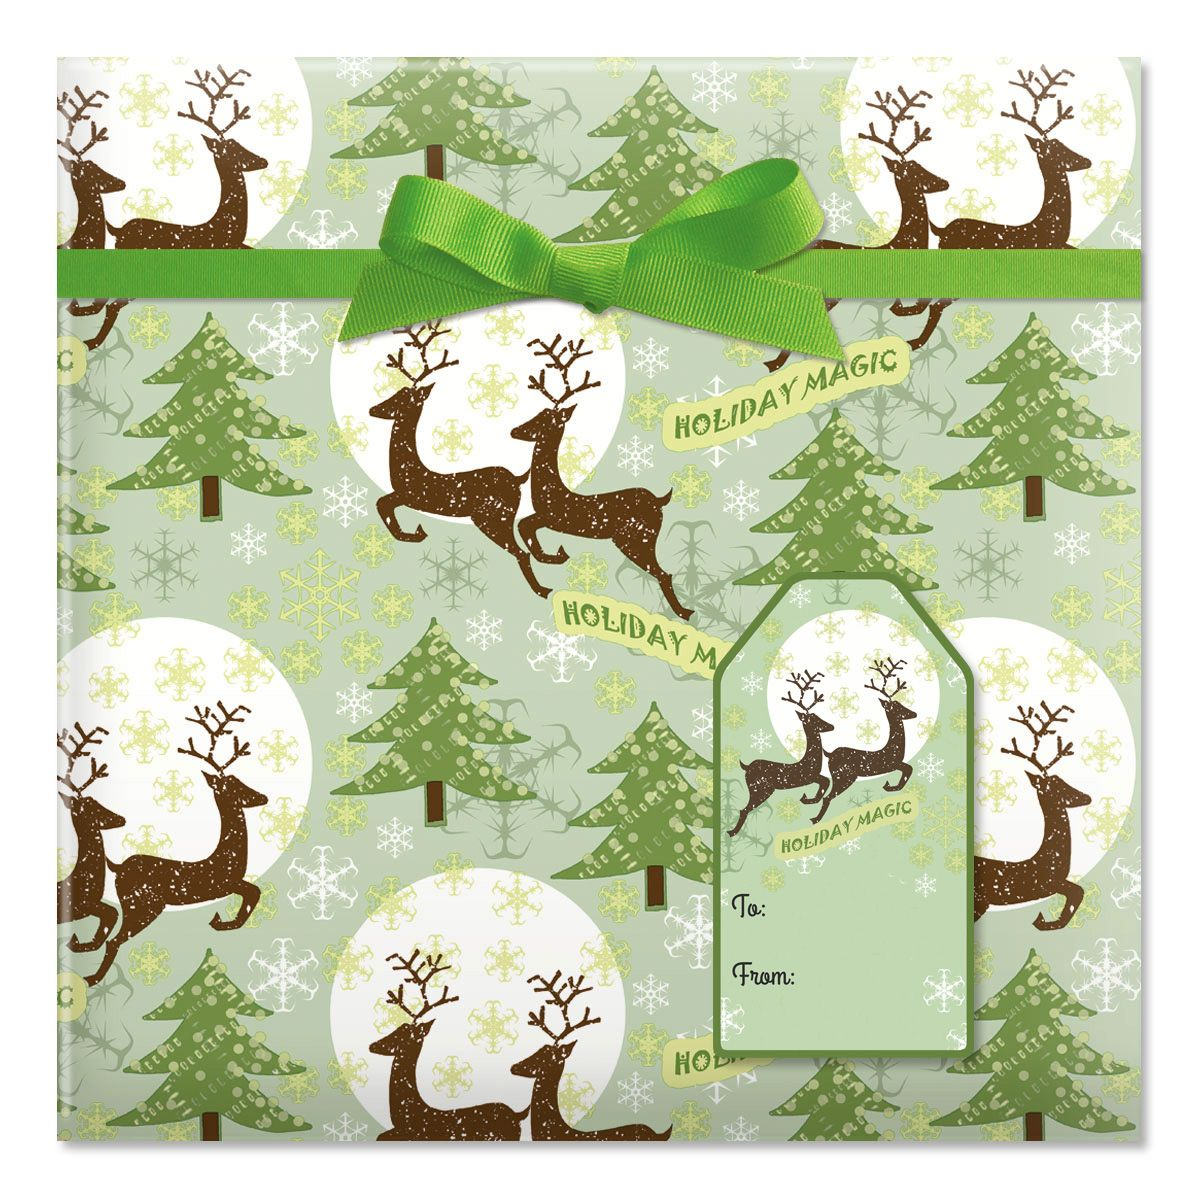 Reindeer Holiday Magic Jumbo Rolled Gift Wrap and Labels